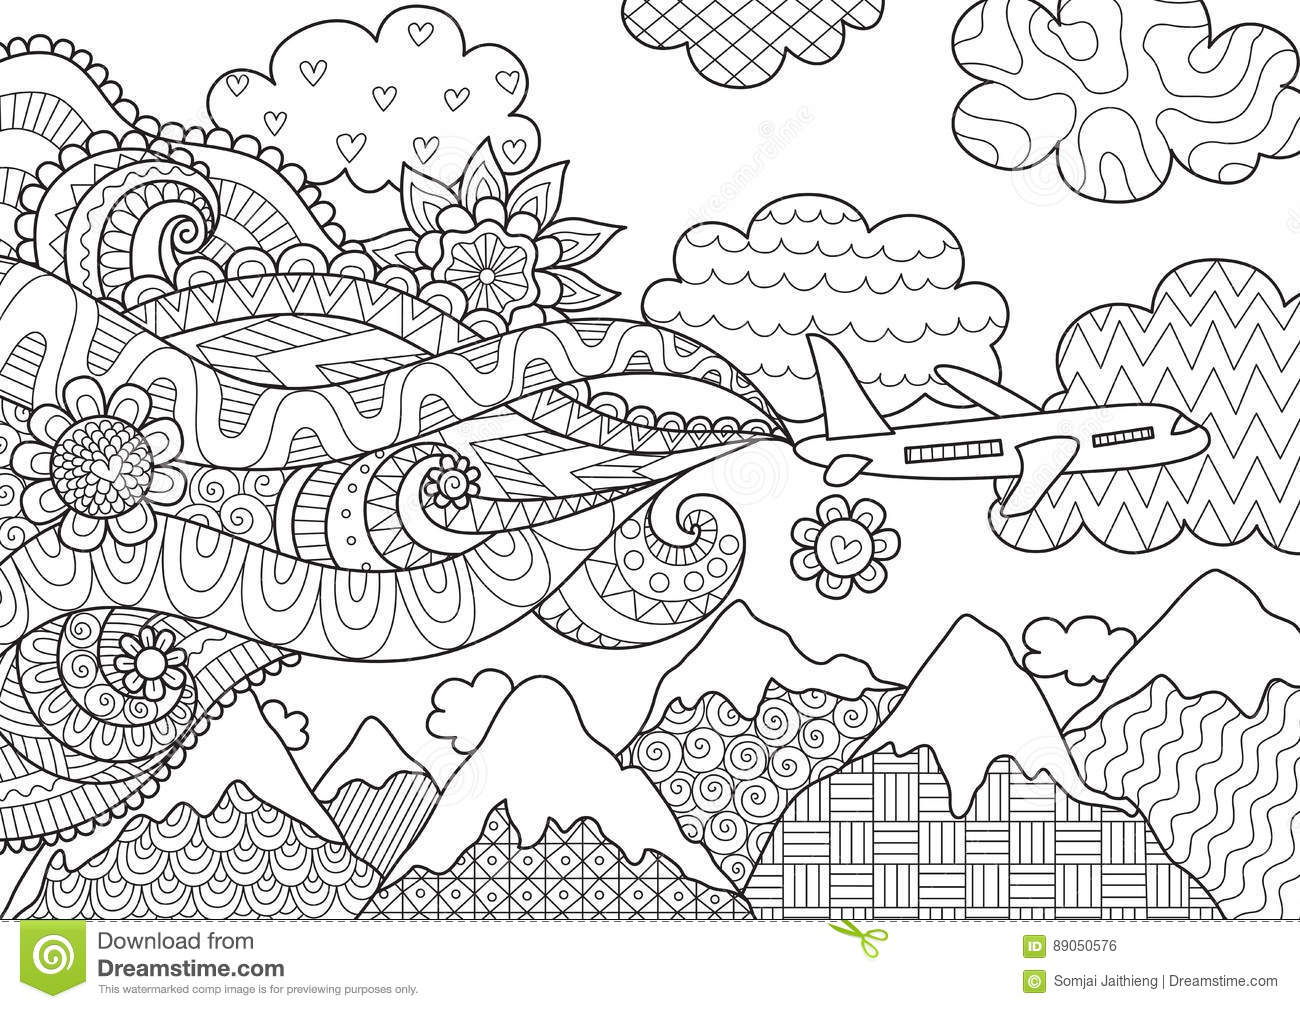 Zendoodle Design Of Airplane For Illustration Stock Vector